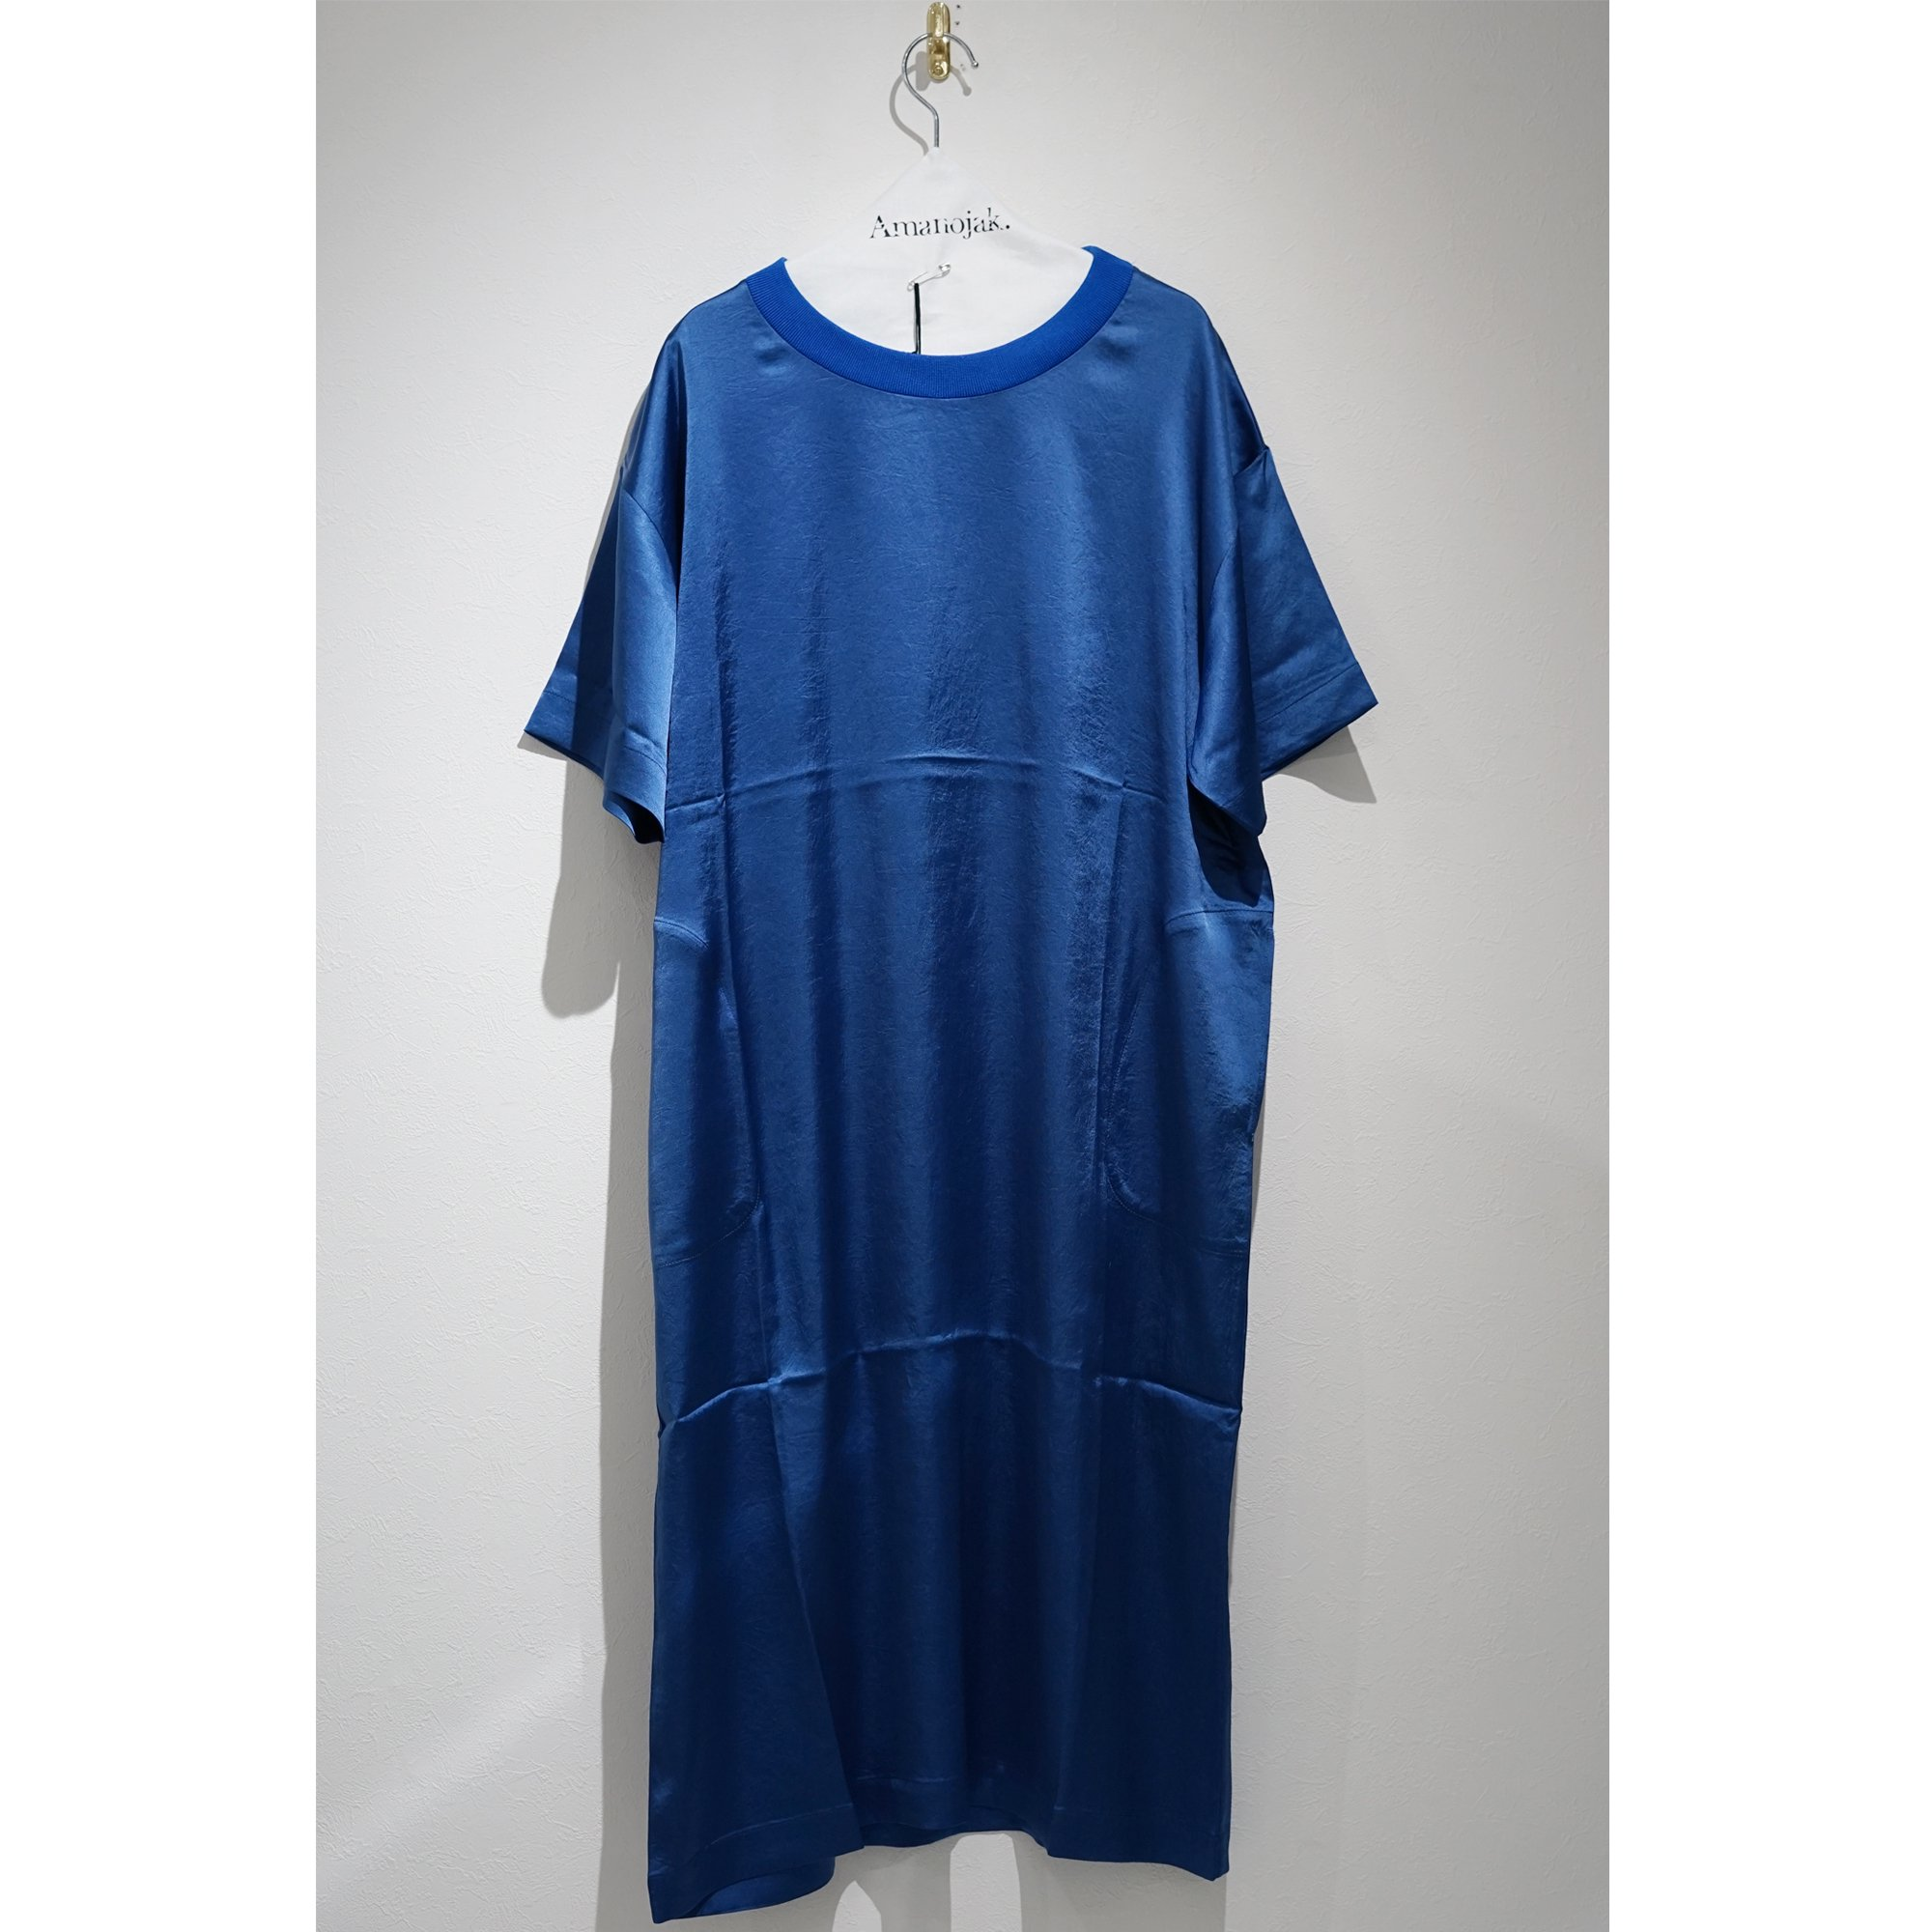 08sircus-VINTAGE WASHER SATIN DRESS ROYAL BLUE